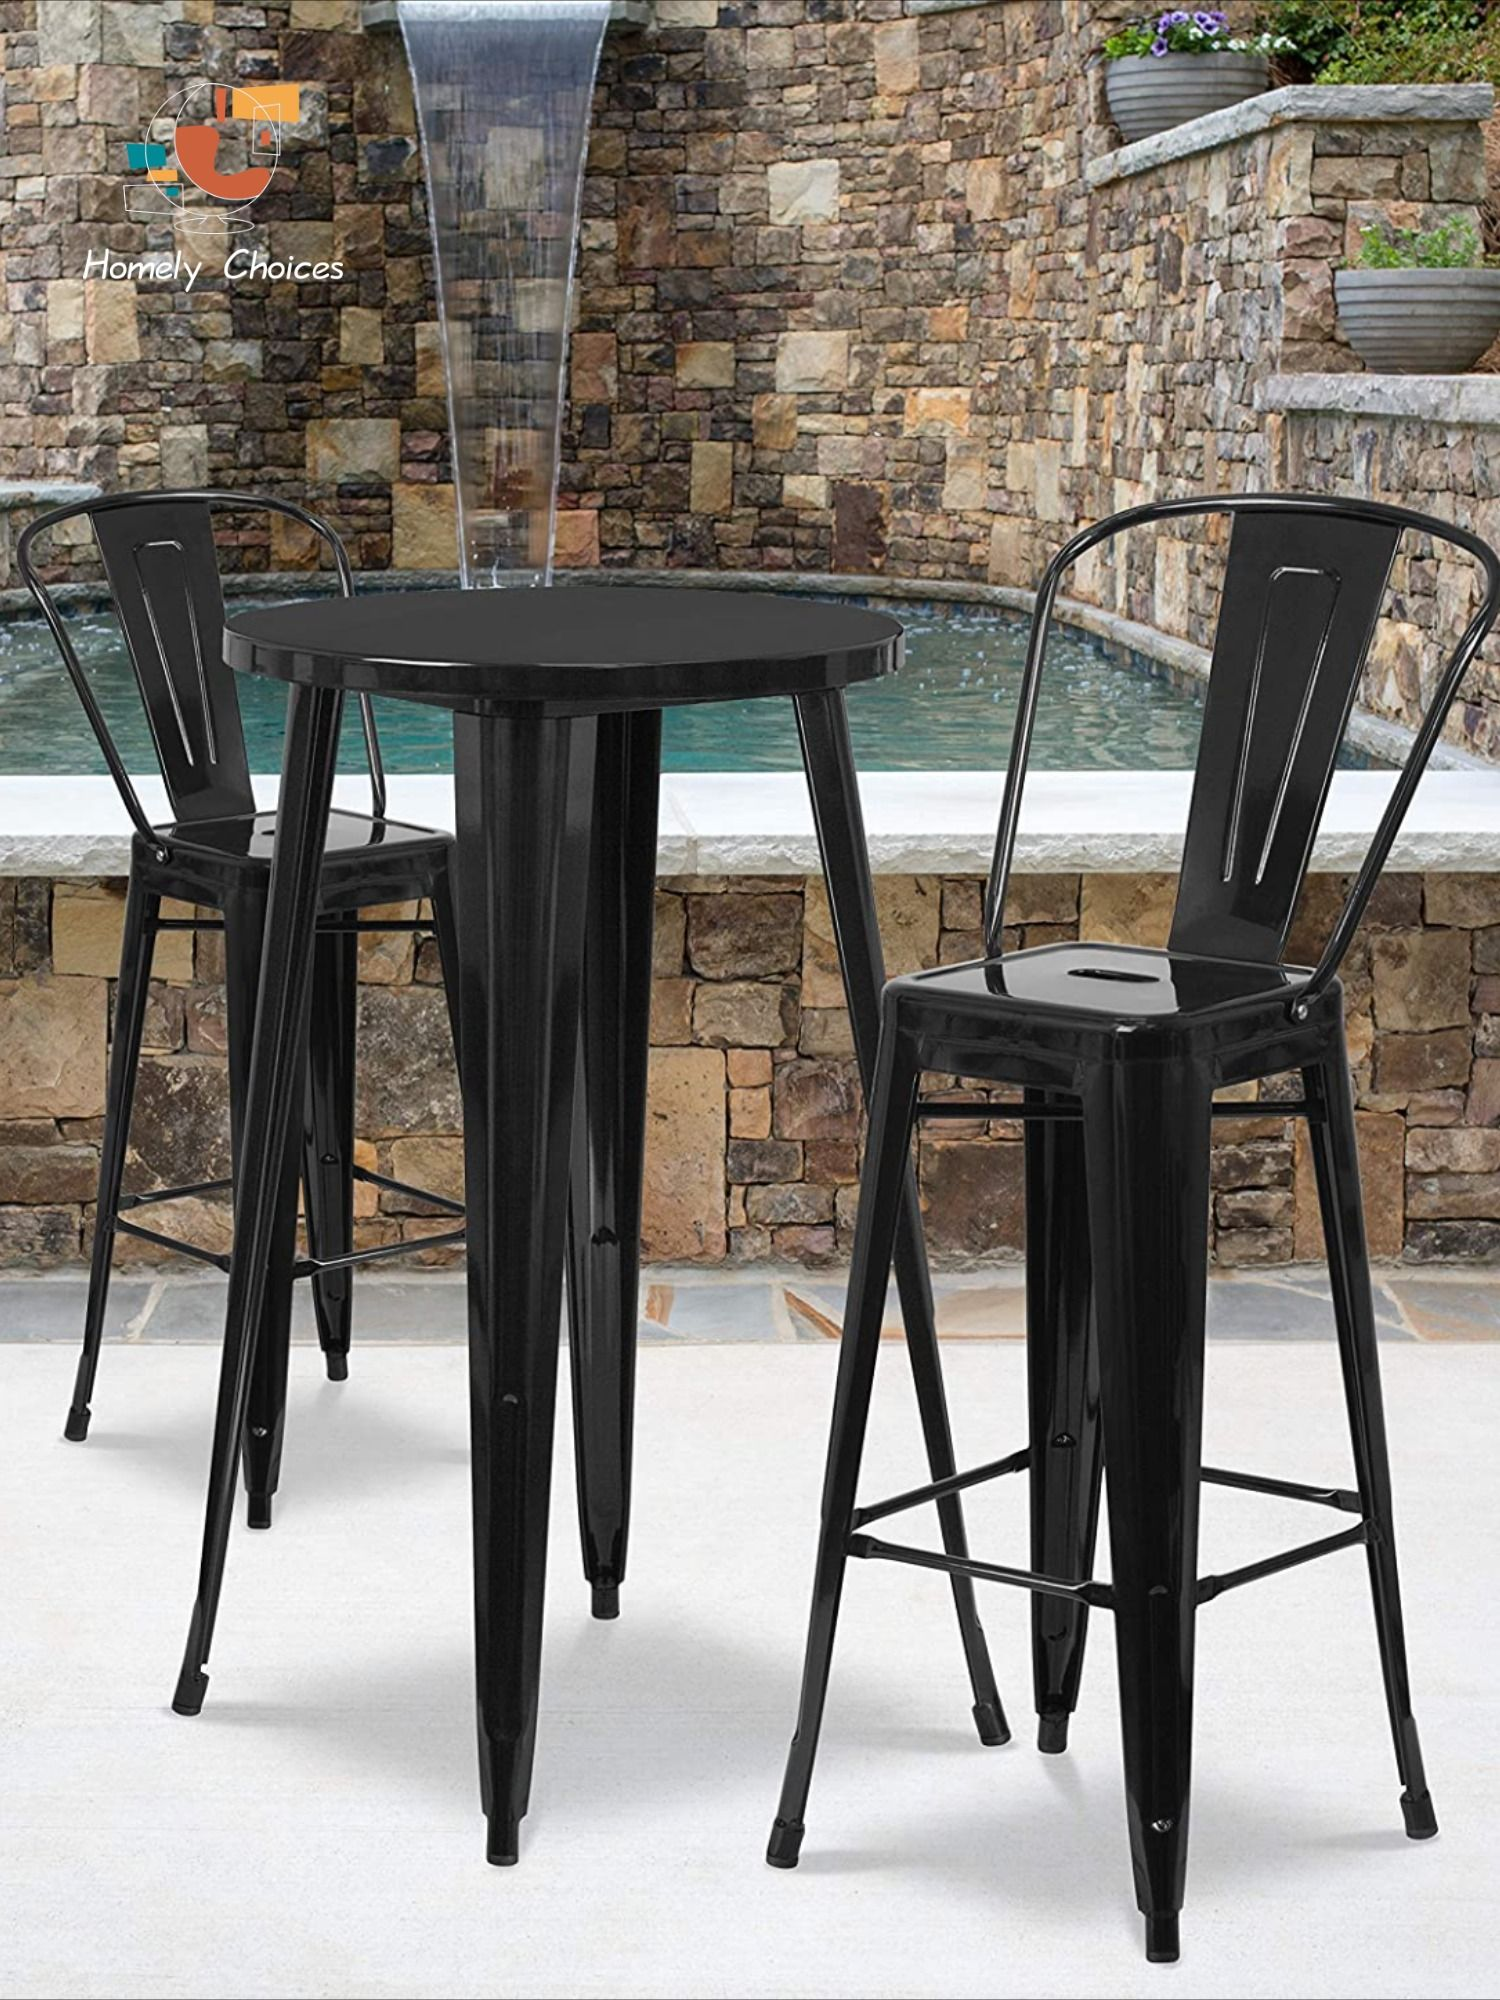 Flash Furniture 24 Round Black Metal Indoor Outdoor Bar Table Set With 2 Cafe Stools Bar Table Outdoor Bar Table Bar Table Sets [ 2000 x 1500 Pixel ]